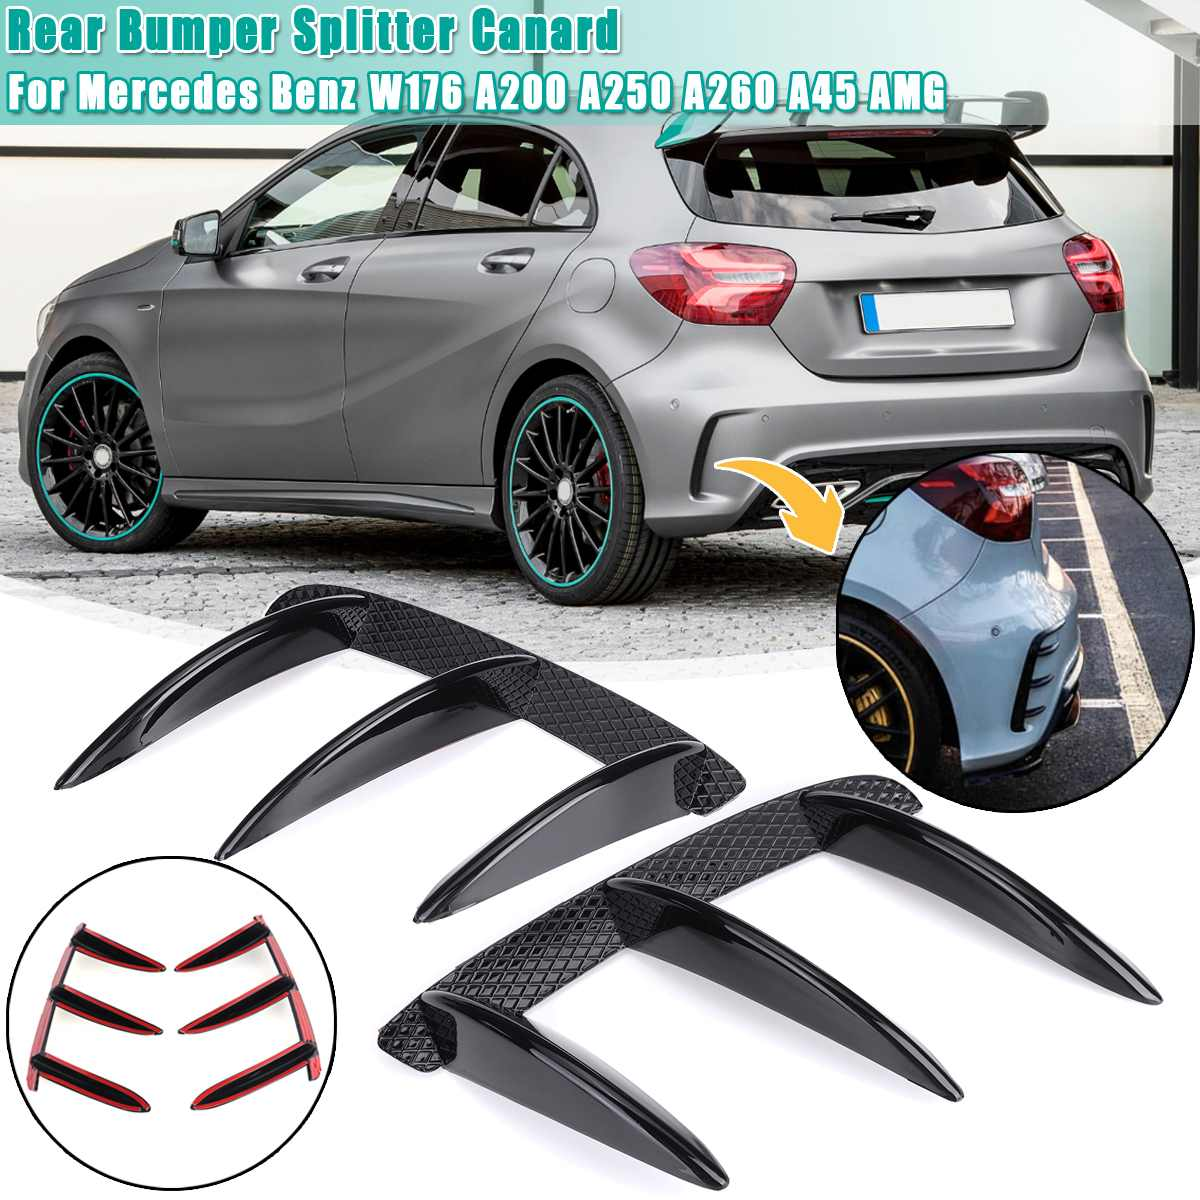 Car ABS Black Rear Bumper Spoiler Canards For Mercedes for Benz W176 <font><b>A200</b></font> A250 A260 A45 for <font><b>AMG</b></font> 2PCS Replacement accessories image